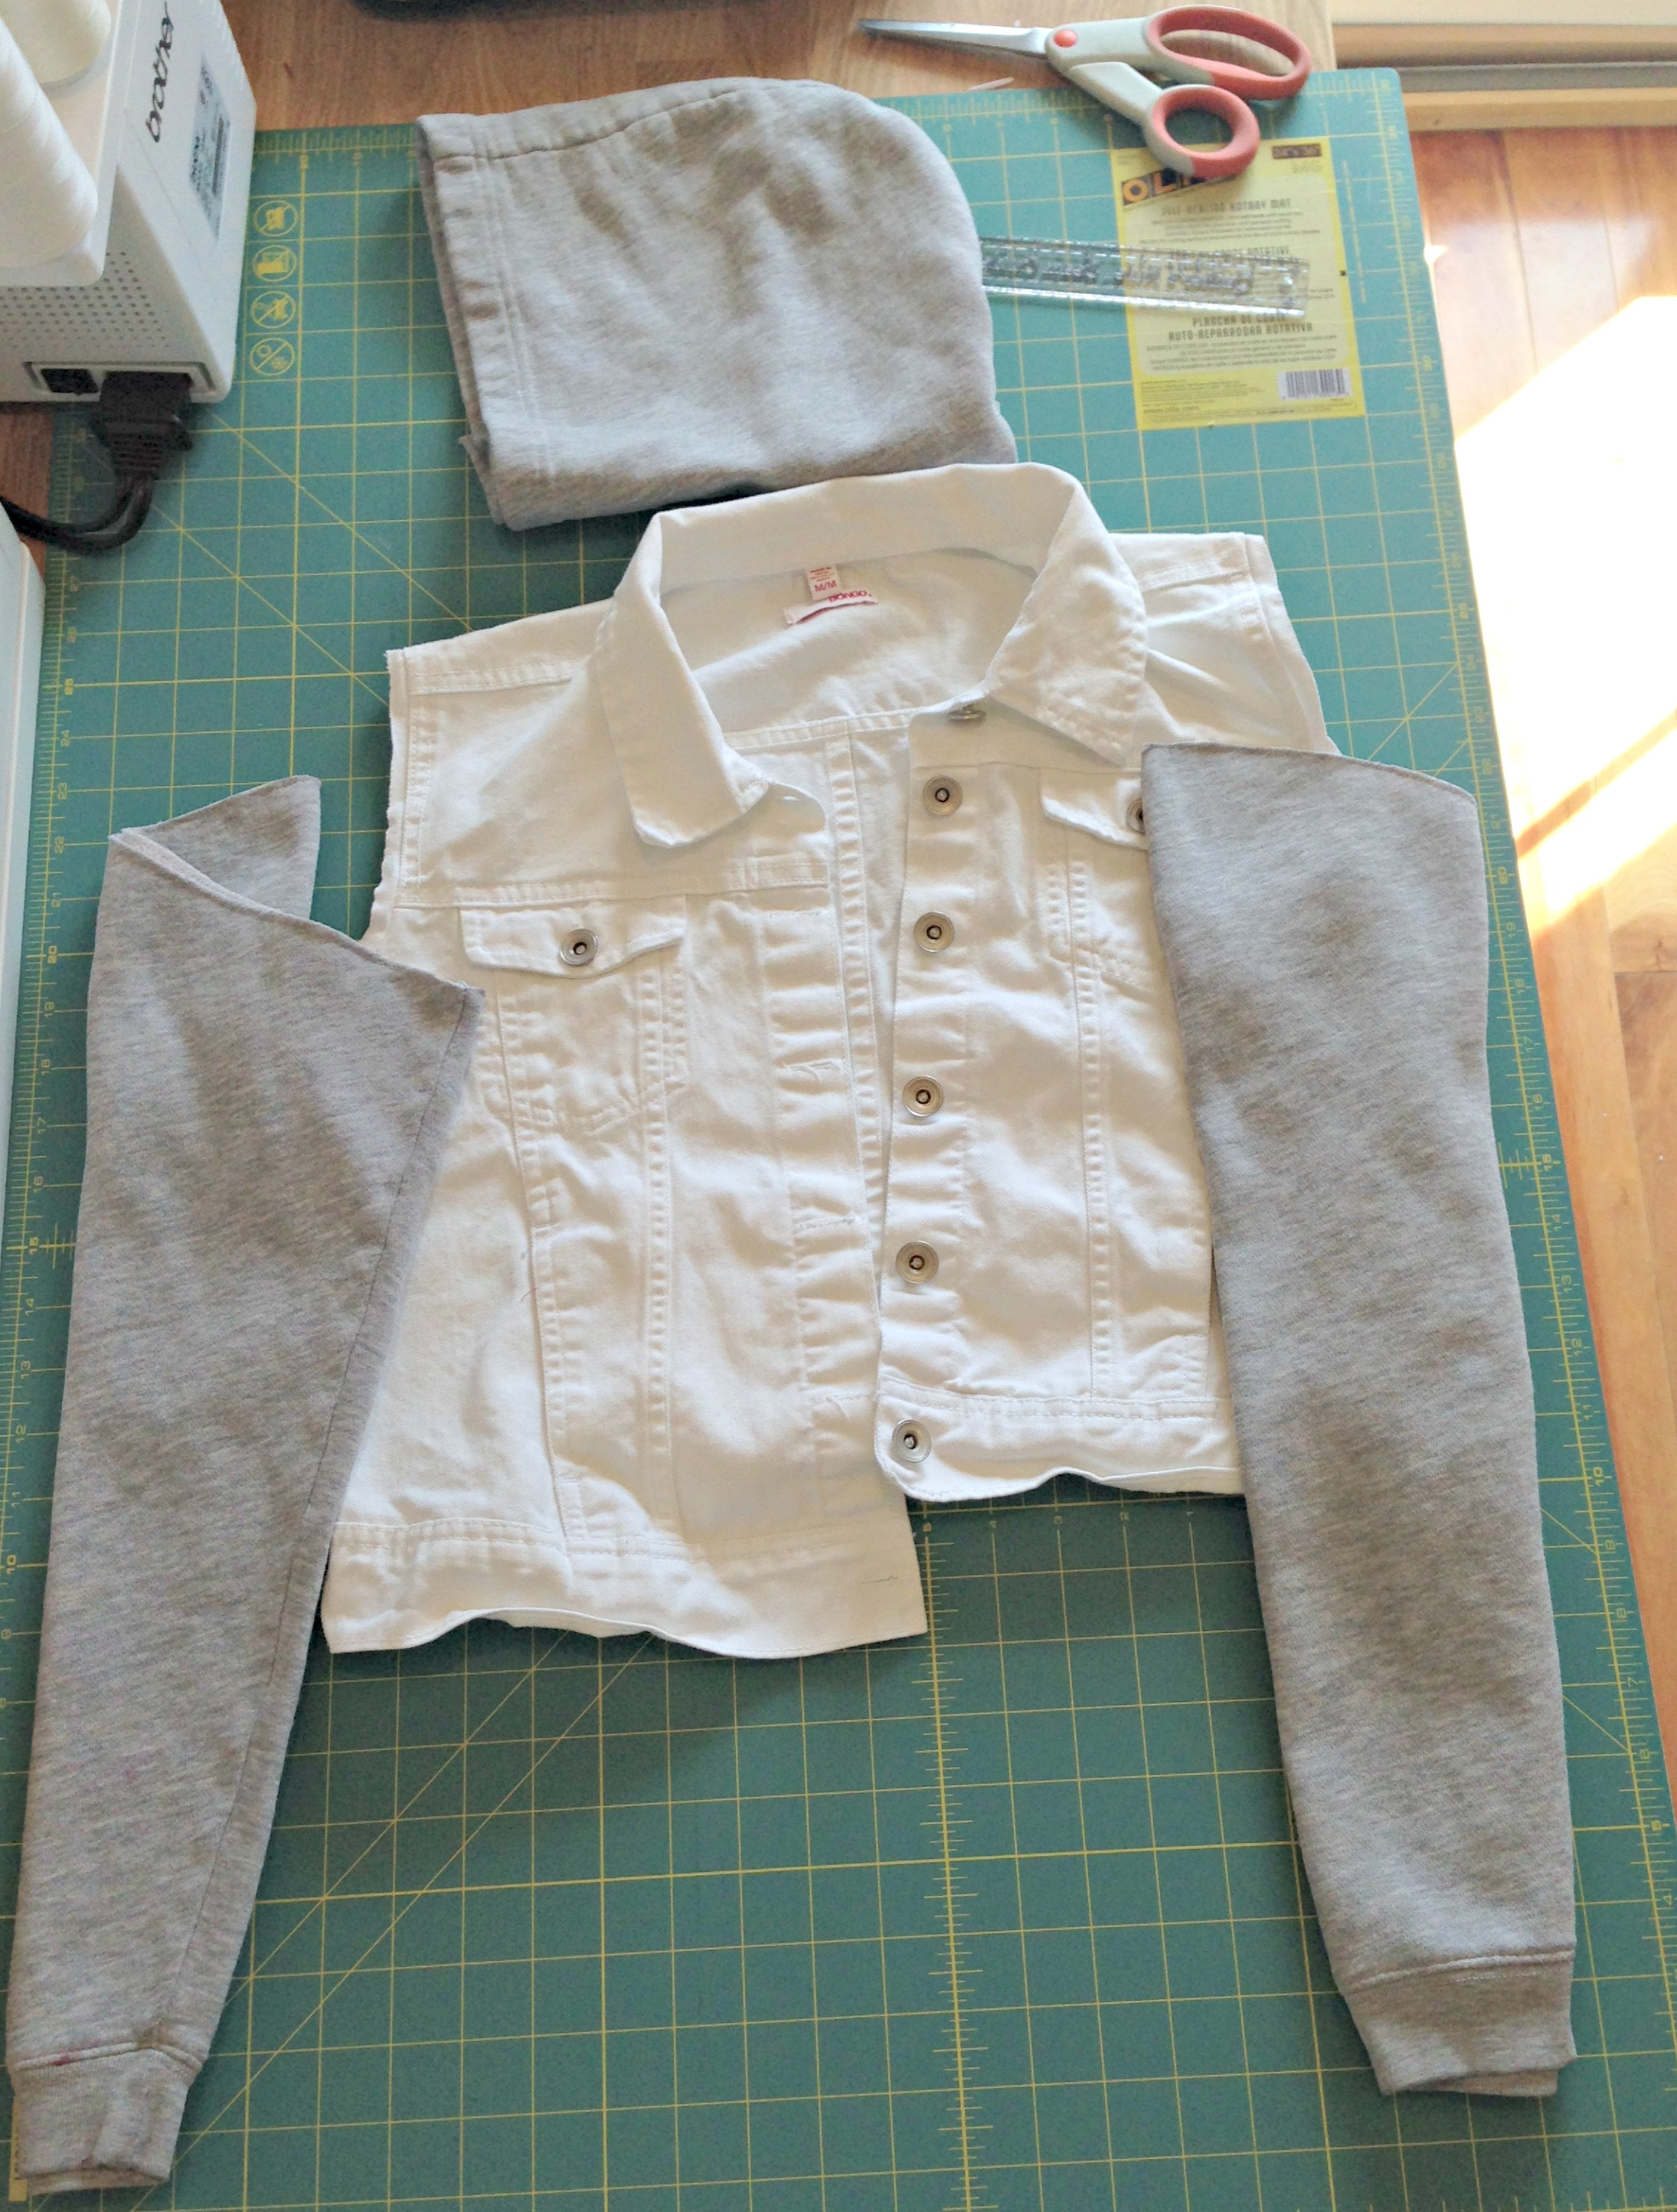 Refashioned Jean Jacket with Sweatshirt Sleeves and Hoodie - Step 1